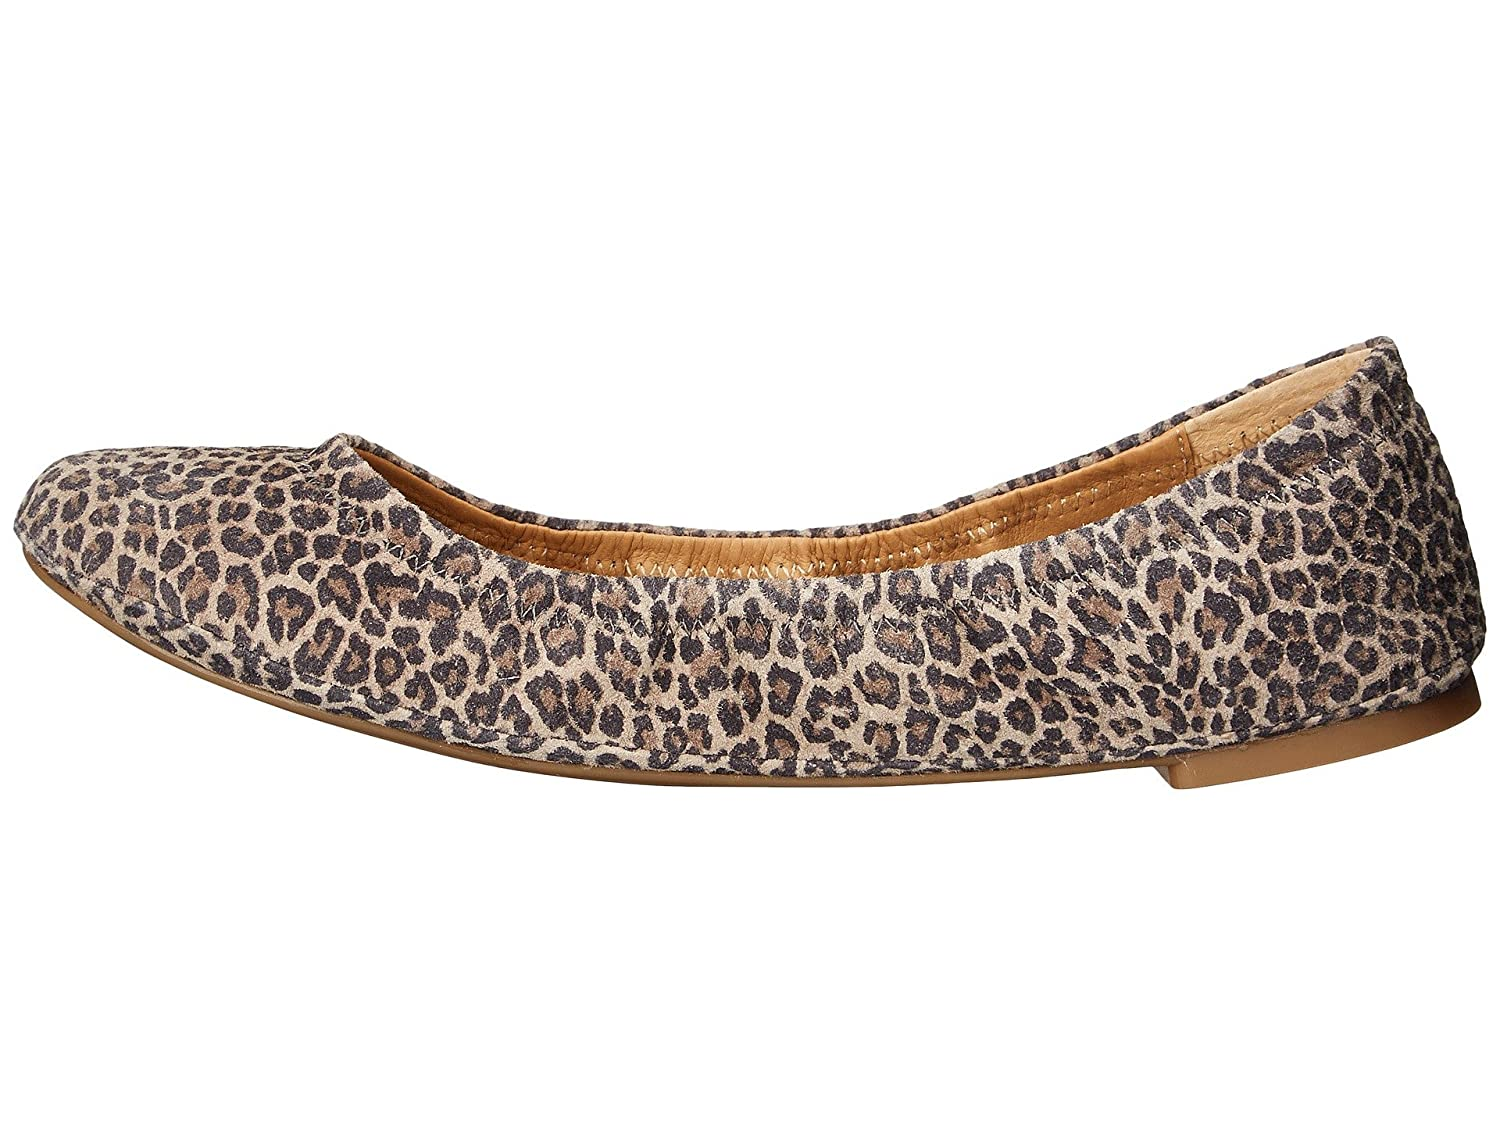 Lucky Brand Women's Emmie Ballet Flat B01CGWSSEO 7.5 M US|Brindle Persian Leopard